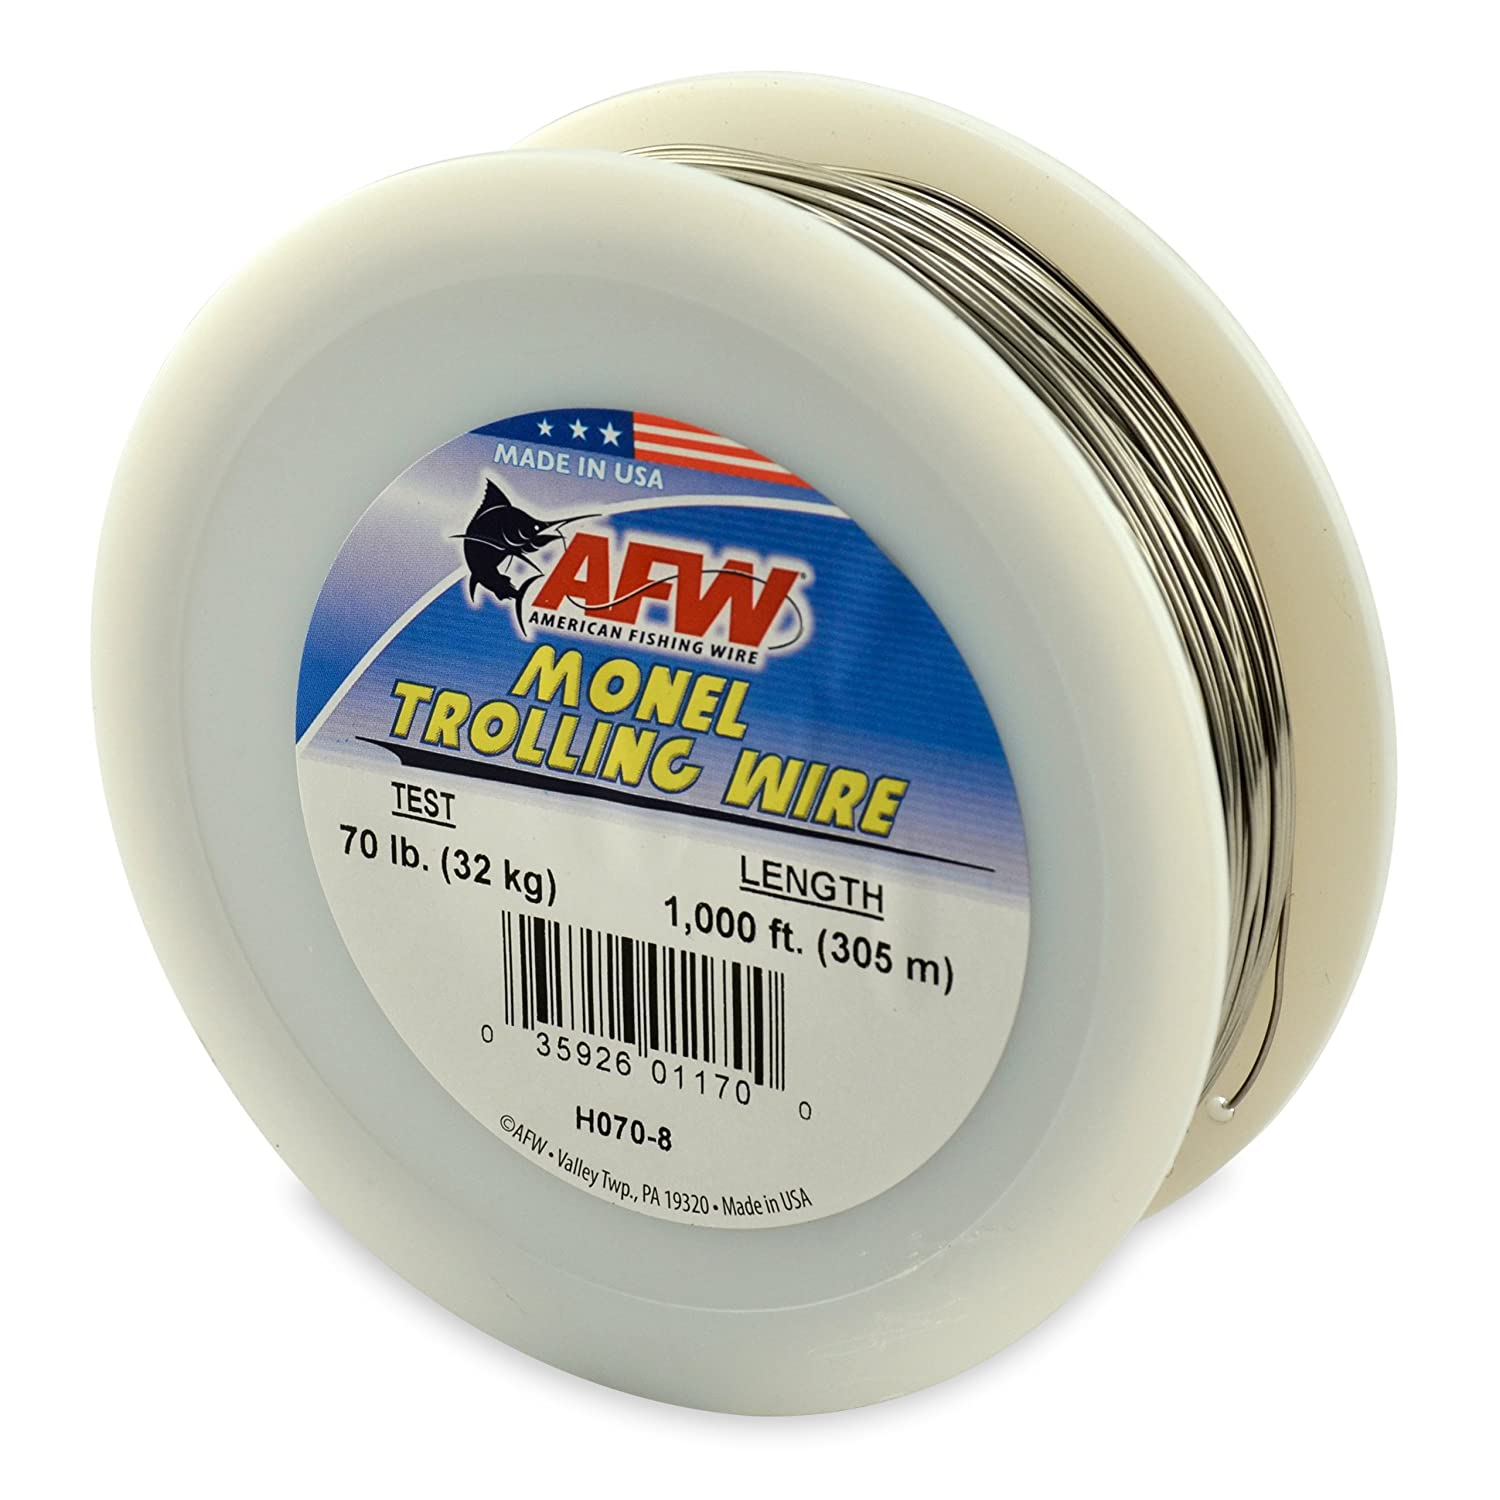 American Fishing Wire Monel Trolling Wire AMF13